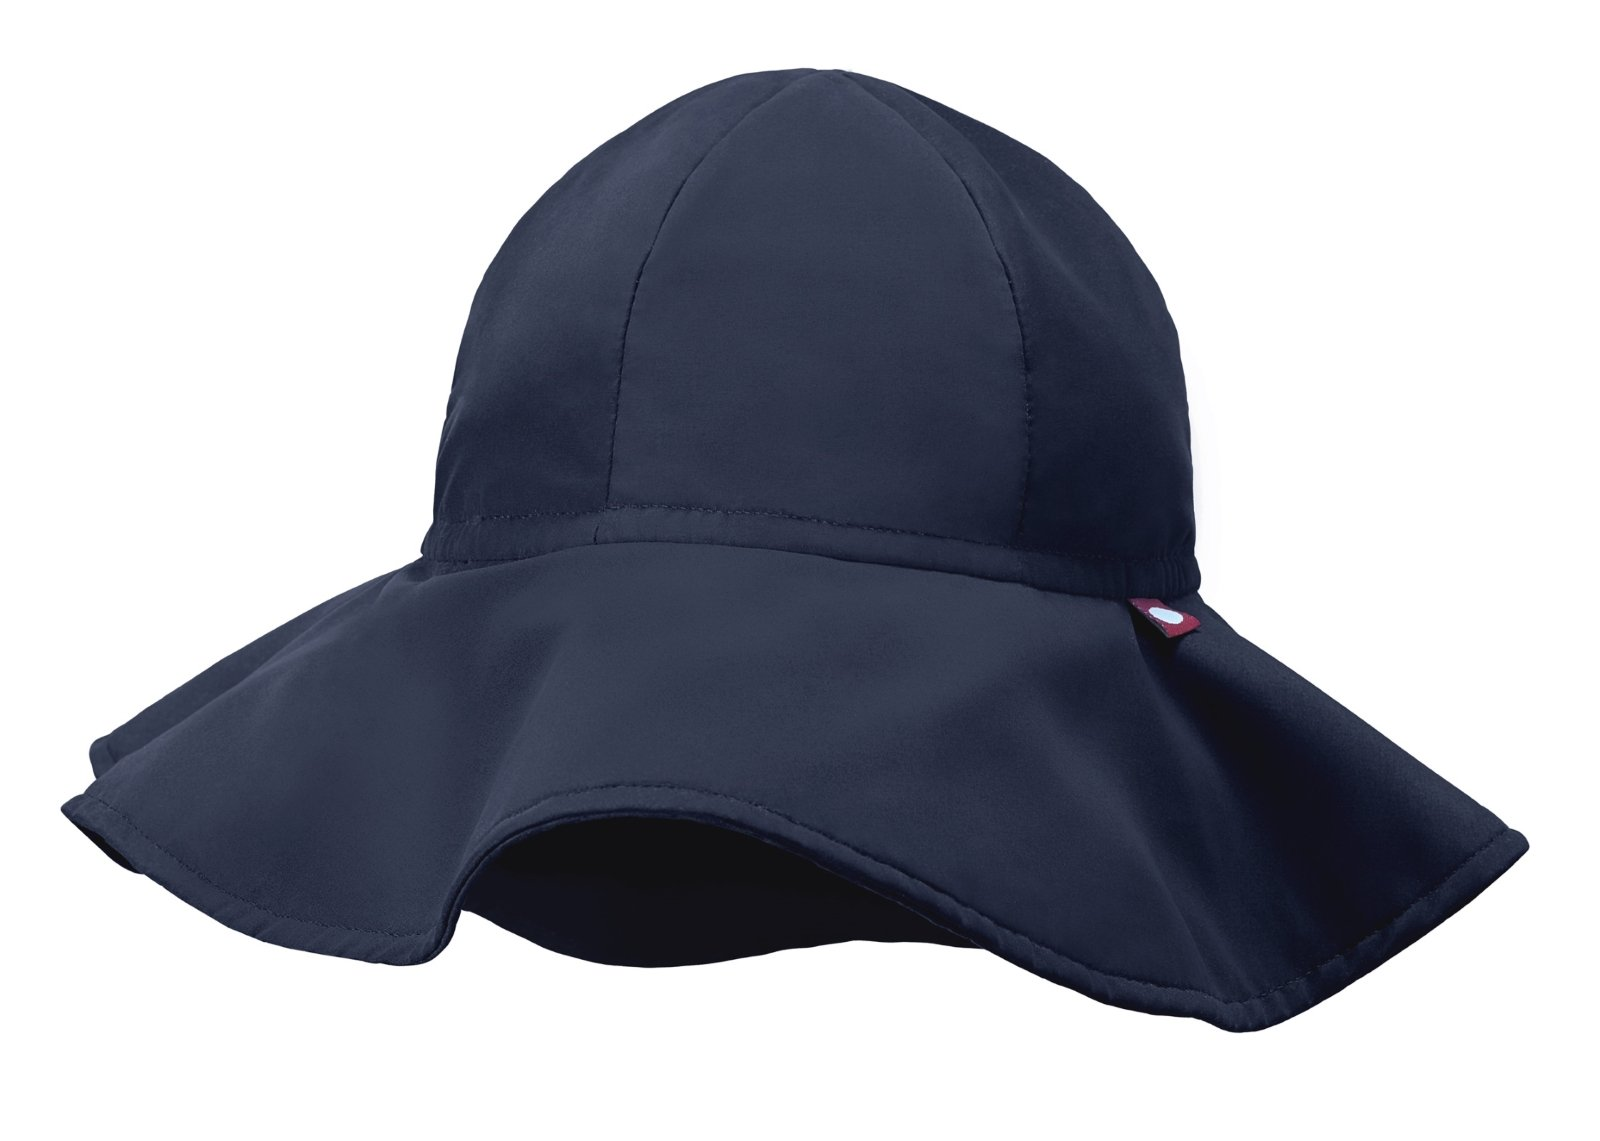 City Threads Swimmig Hat for Boys and Girls, Swim Hat Bucket Floppy Hat with SPF Sun Protection SPF for Beach Summer Pool, Navy, XXL